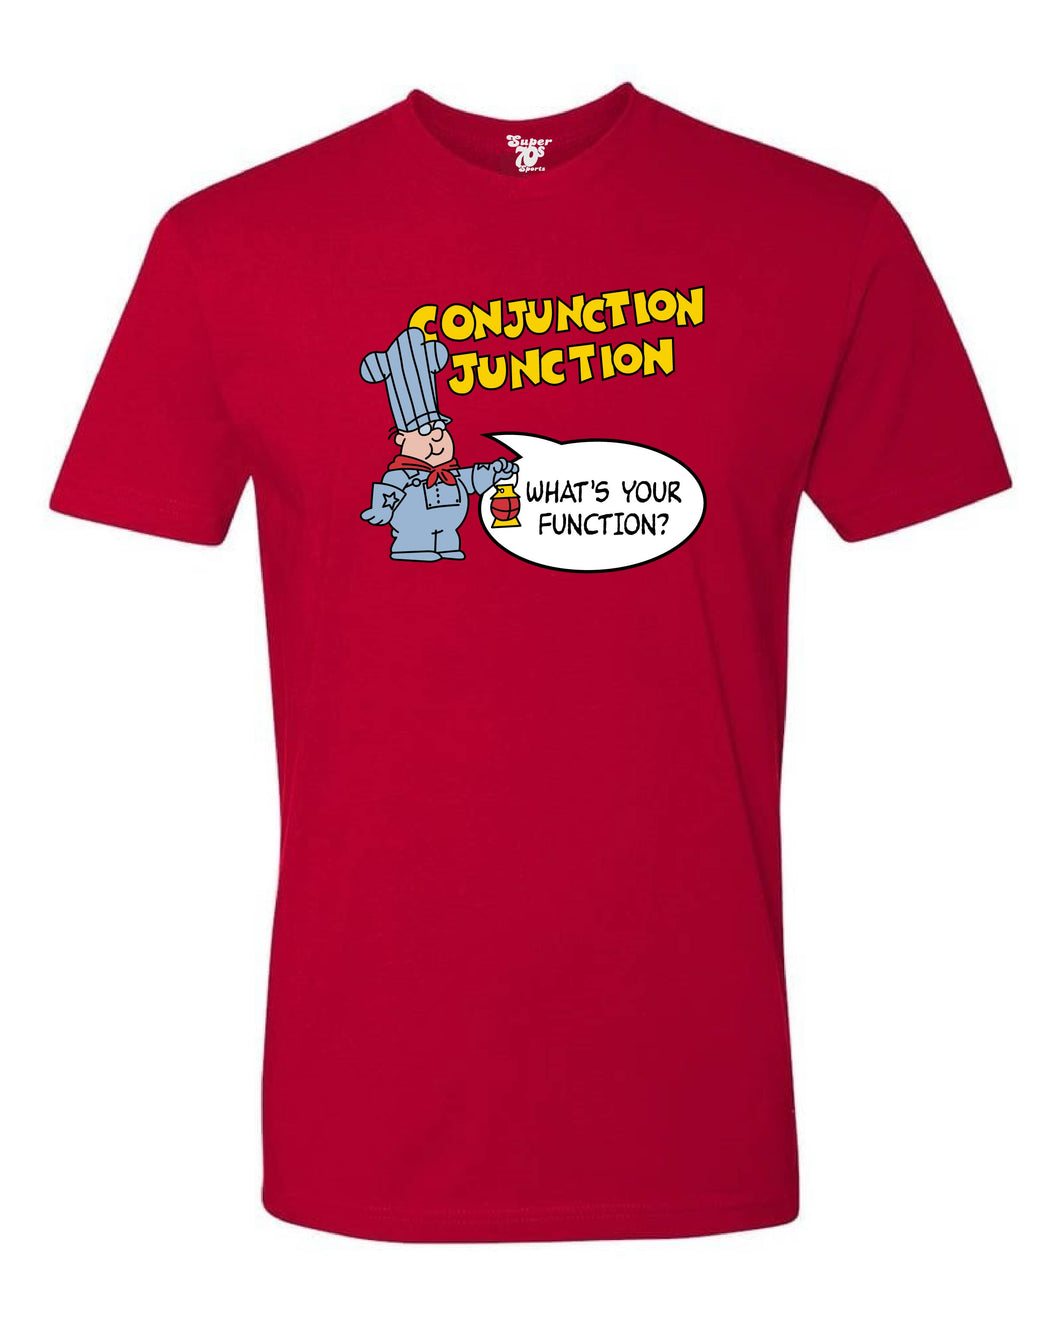 Conjunction Junction Tee